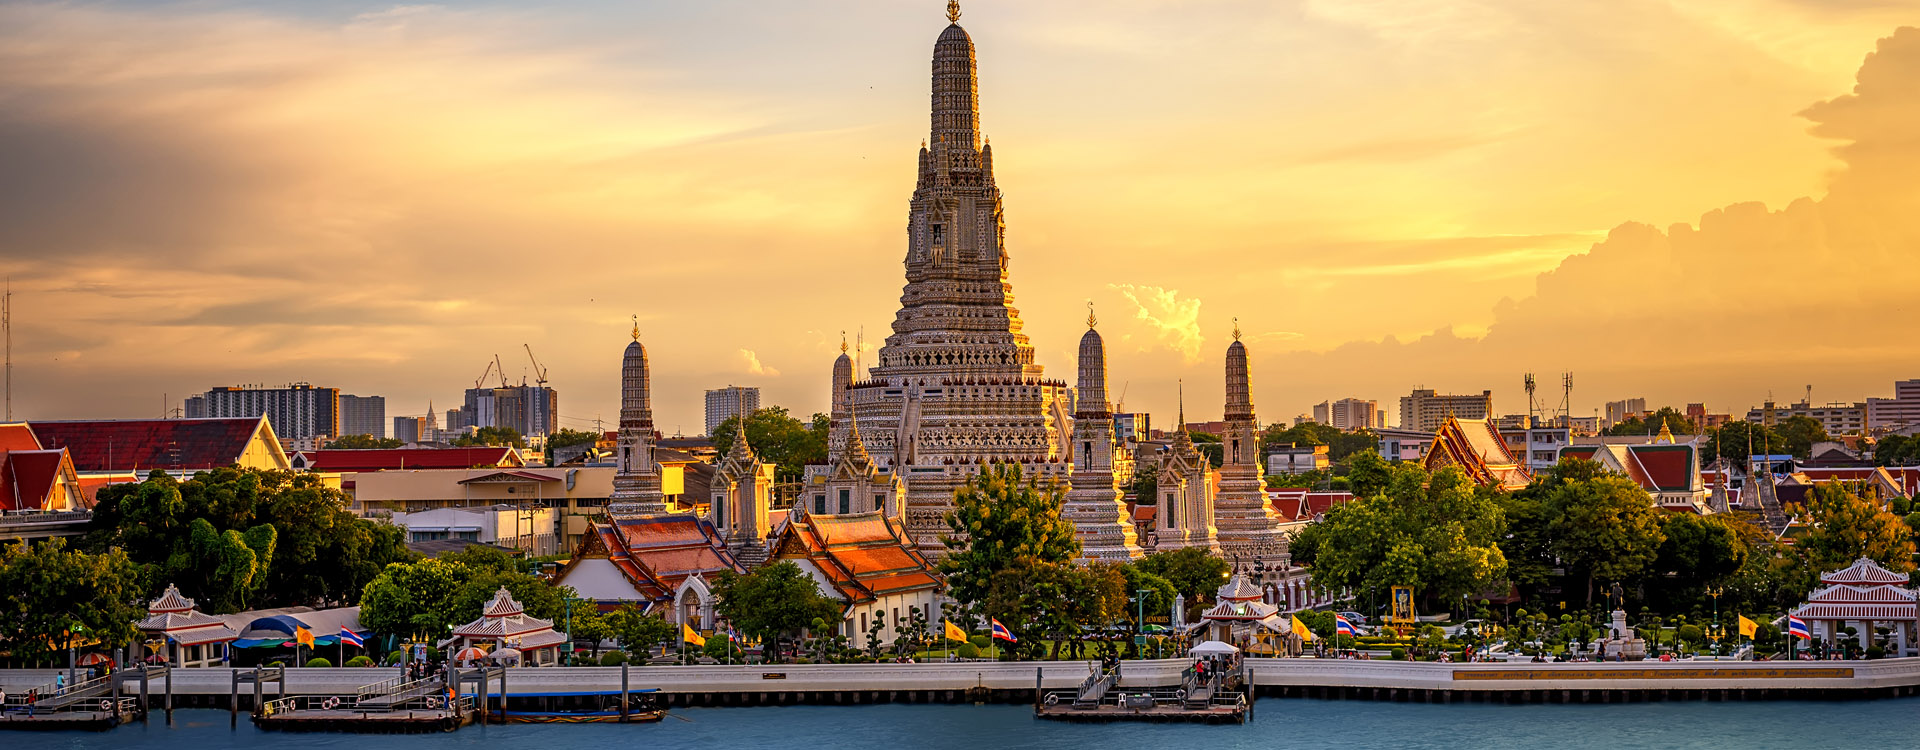 Wat Arun Buddhist Temple in bangkok Thailand. Yai district of Bangkok, Thailand landmark